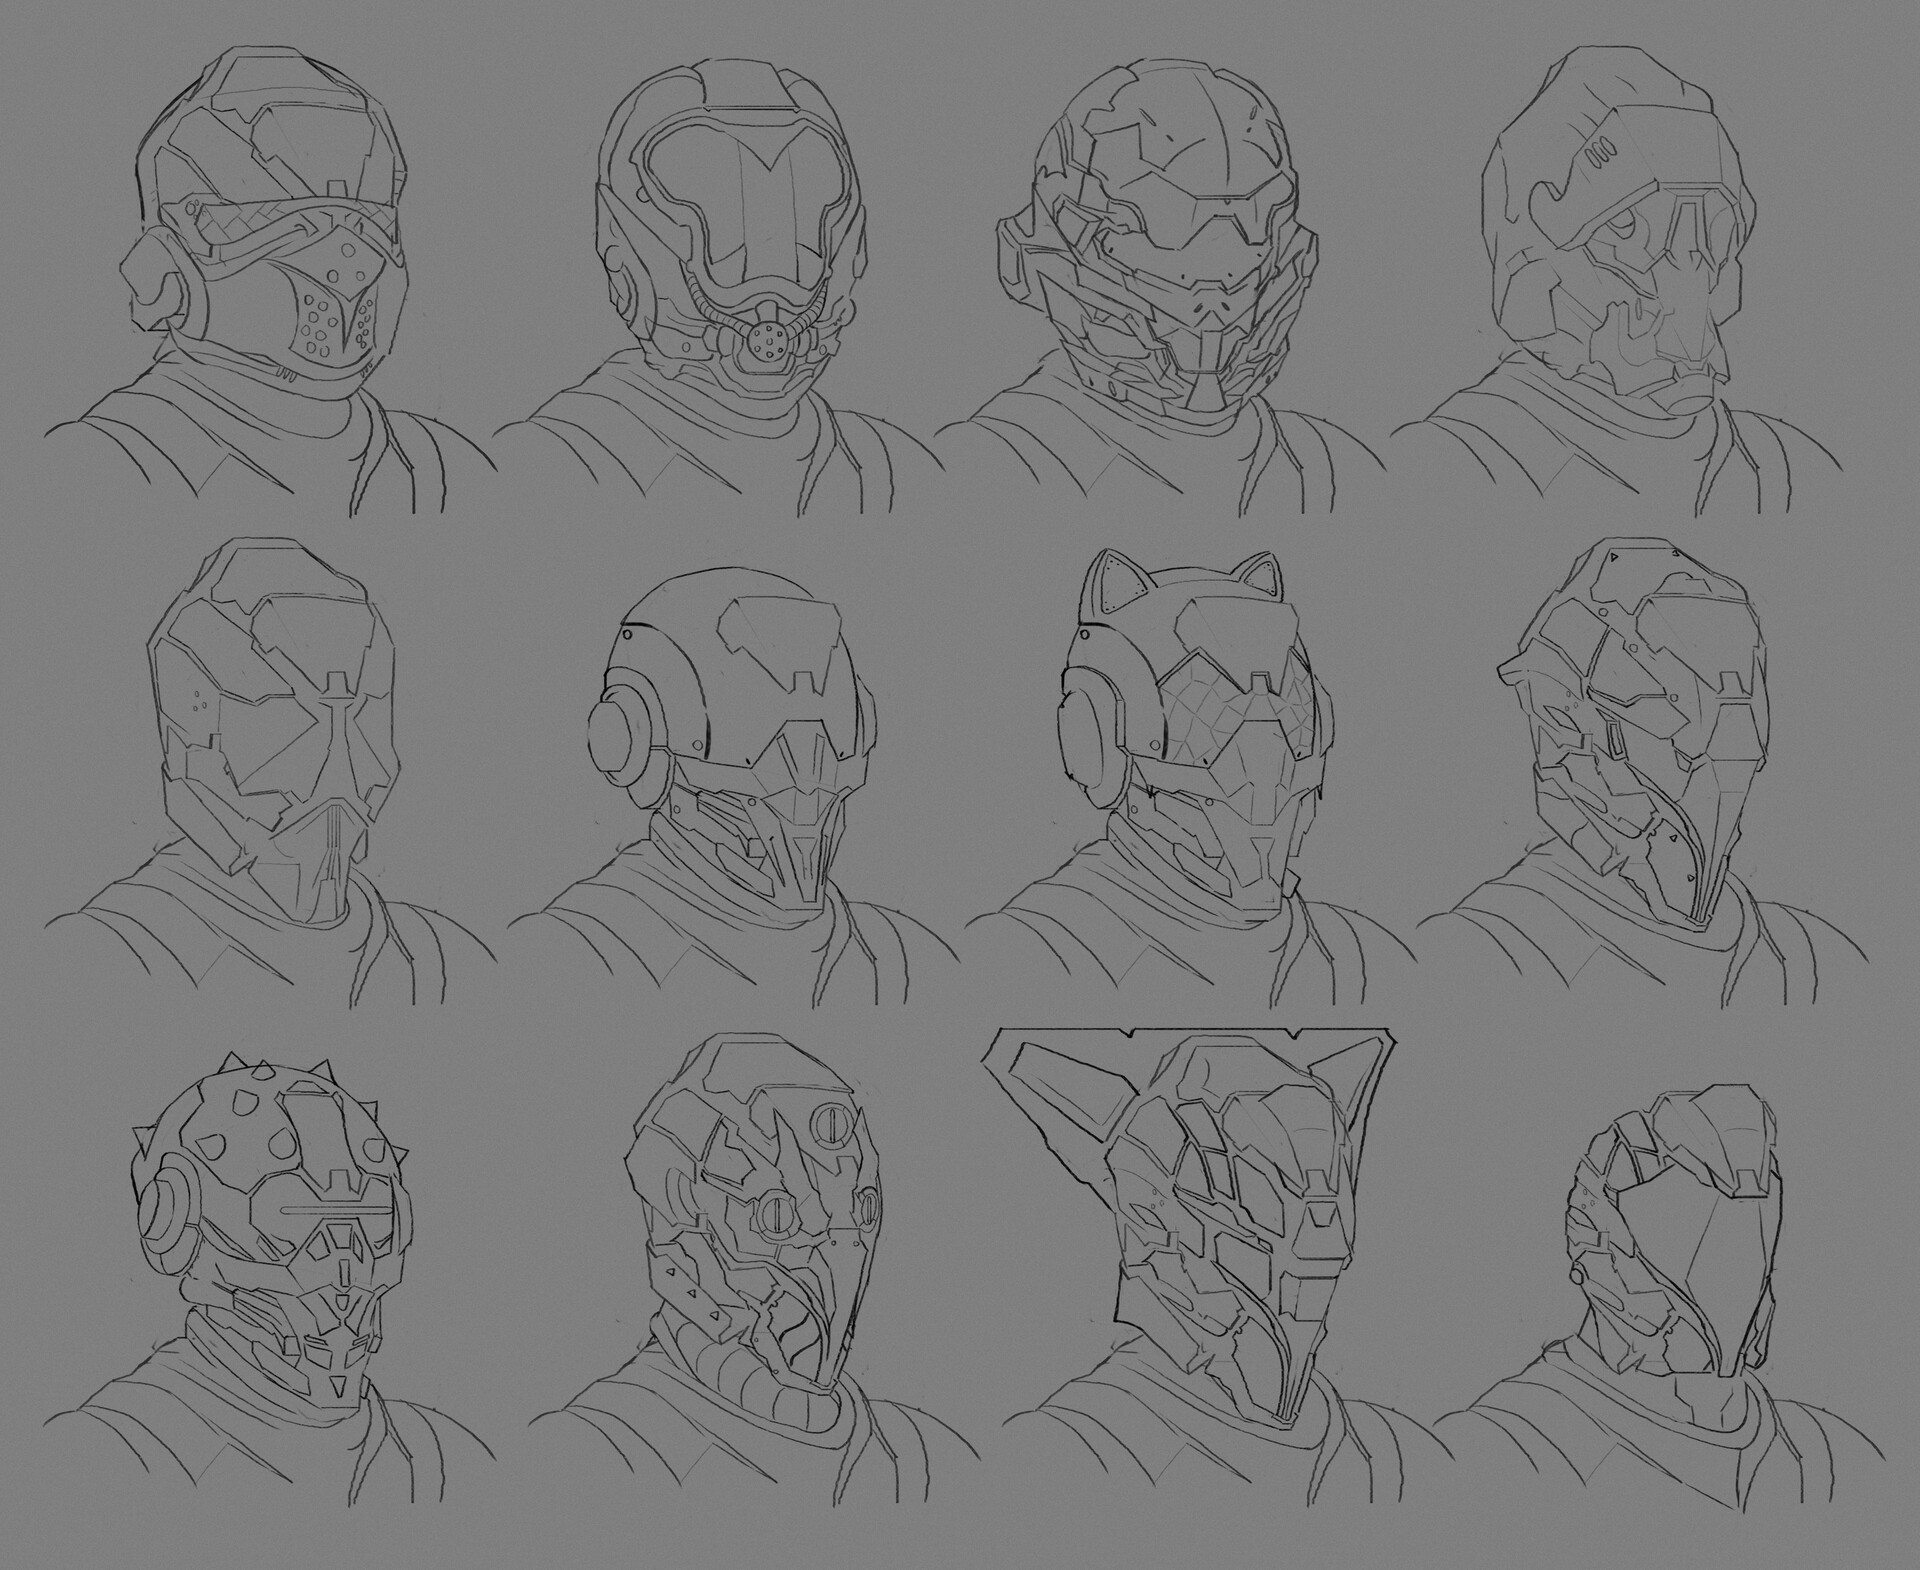 James starr king starr king sci helm sketches